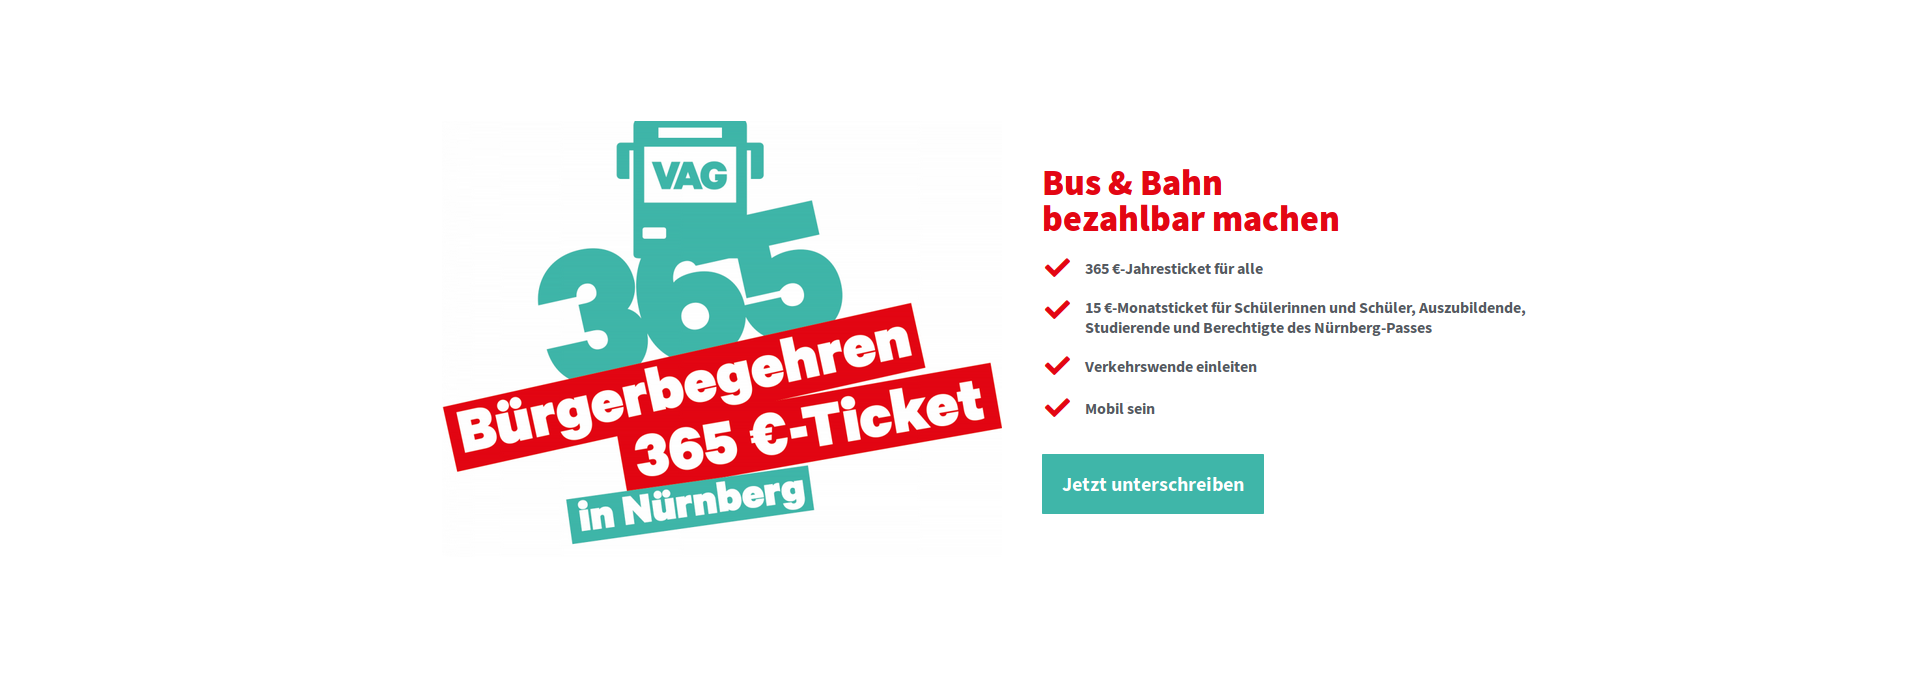 Bür­ger­be­geh­ren 365 € — Ticket gestar­tet